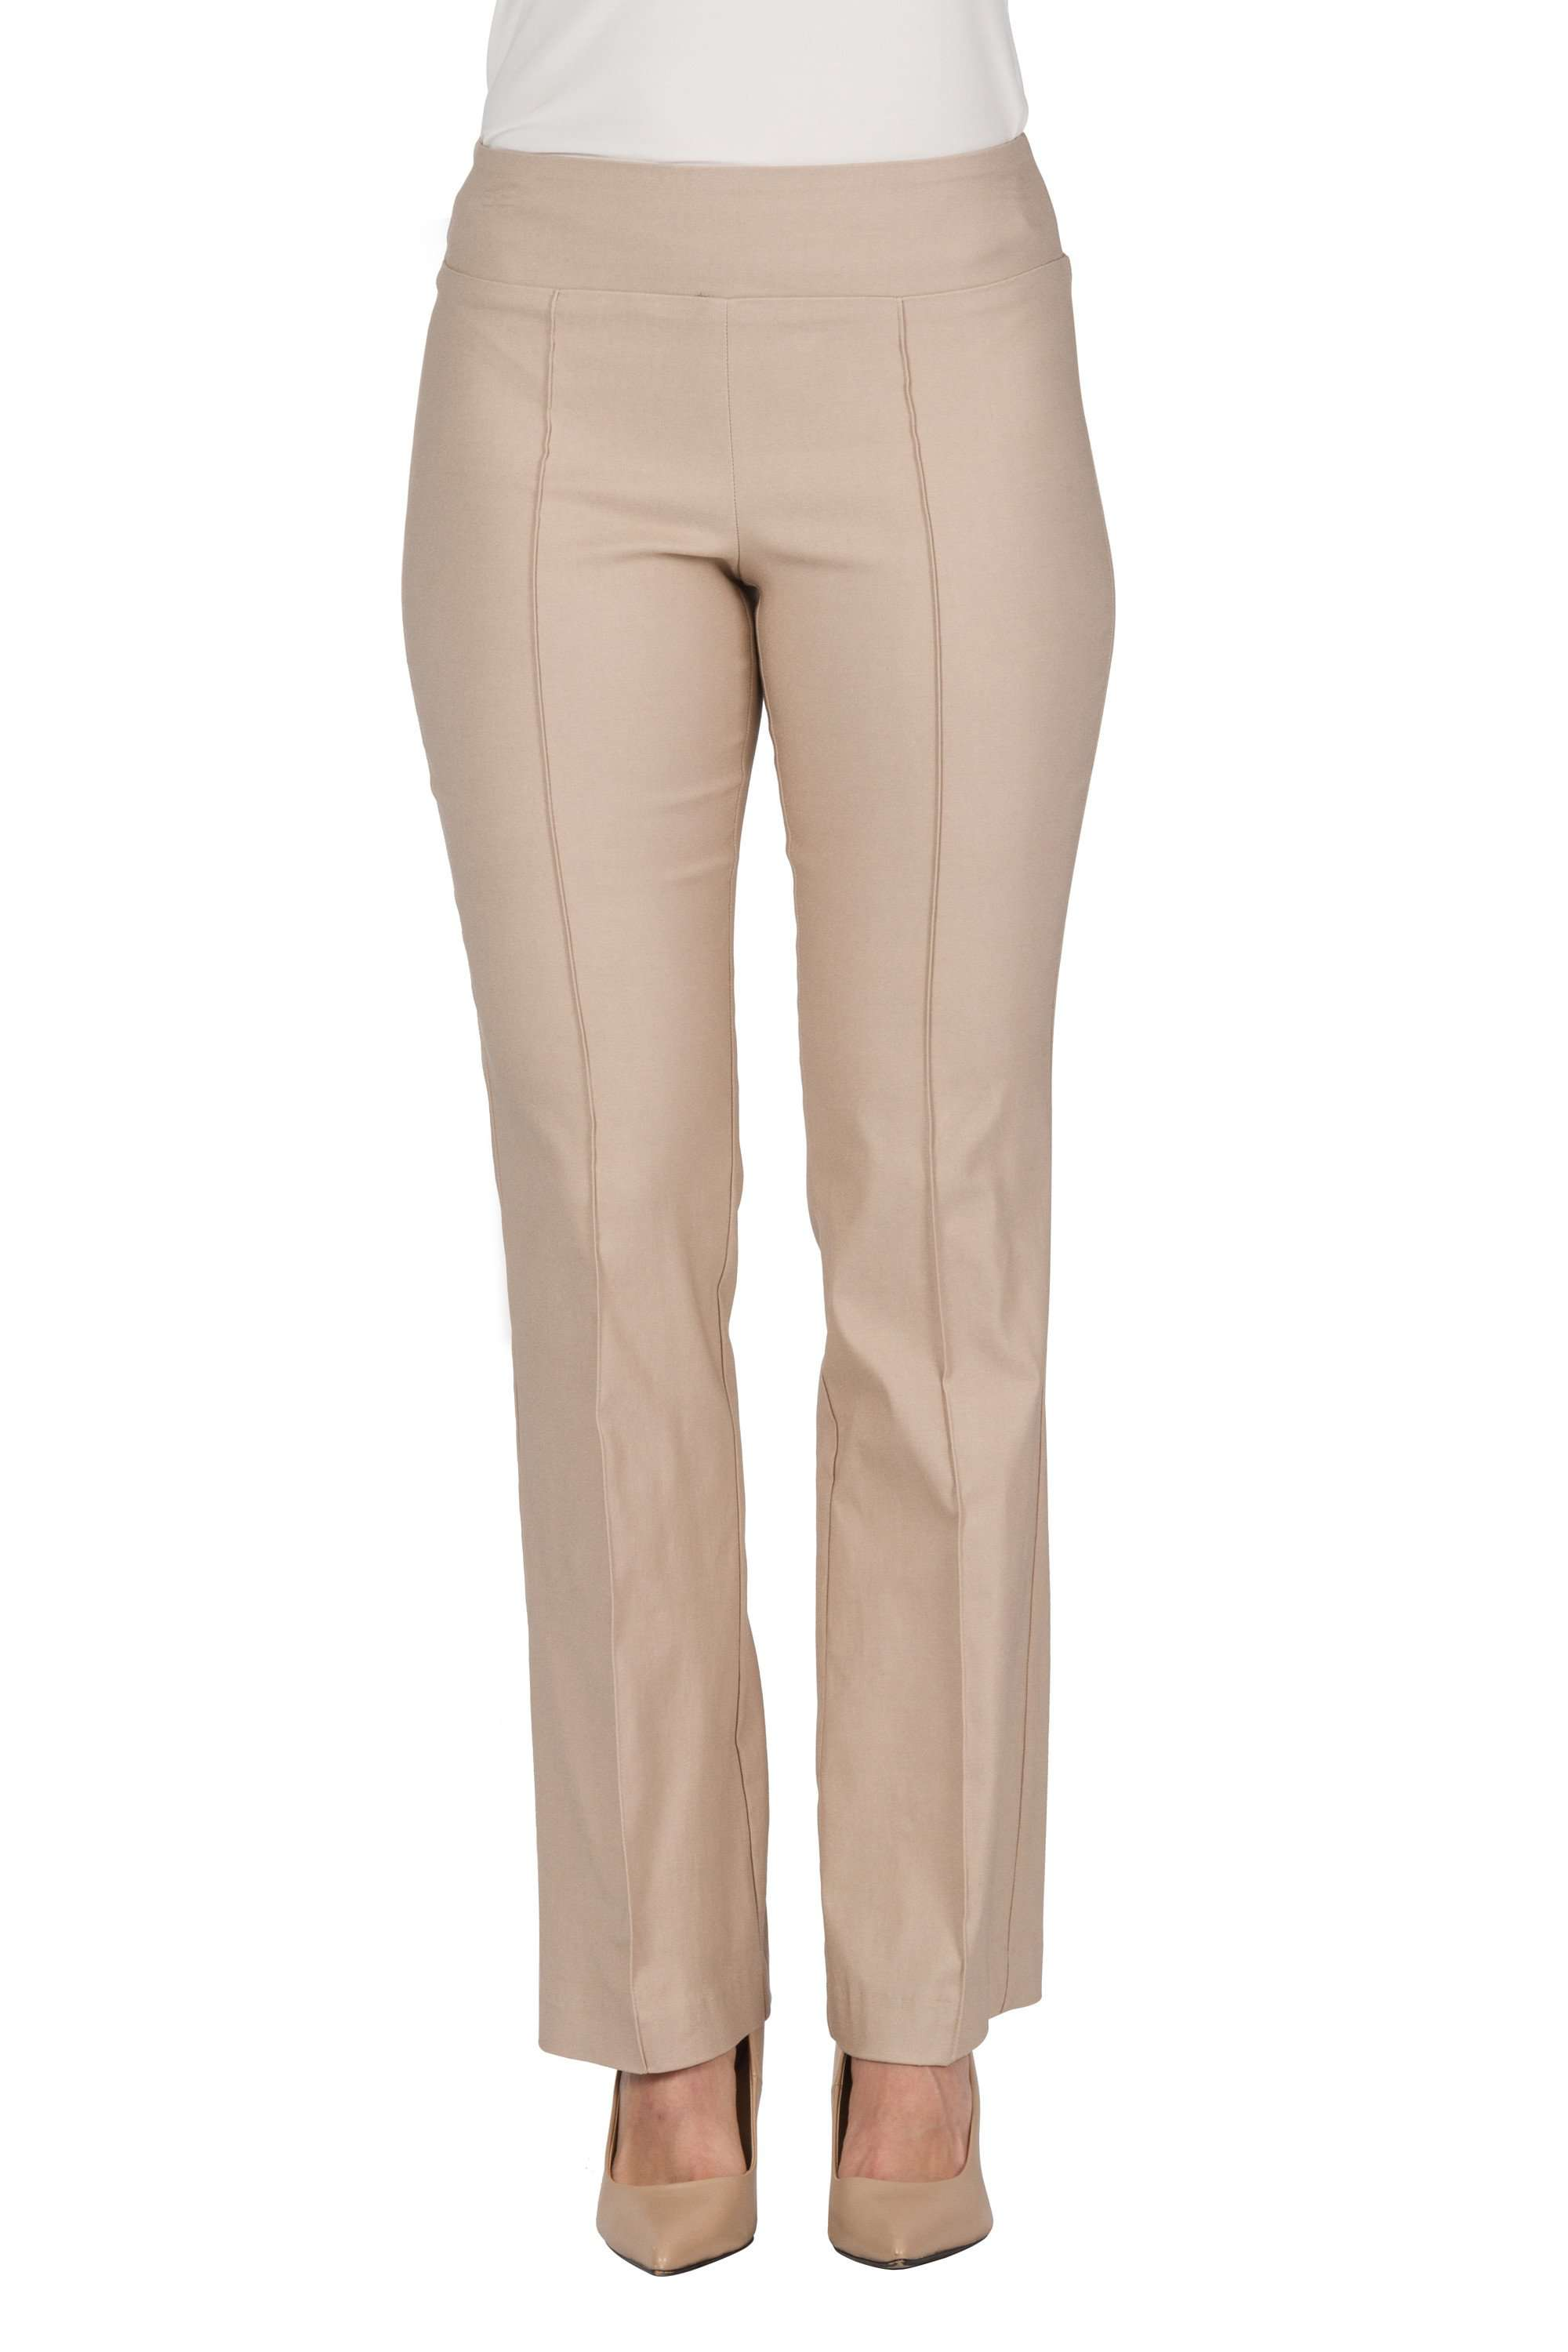 Women's Tan Miracle Fit Stretch Pants - Yvonne Marie